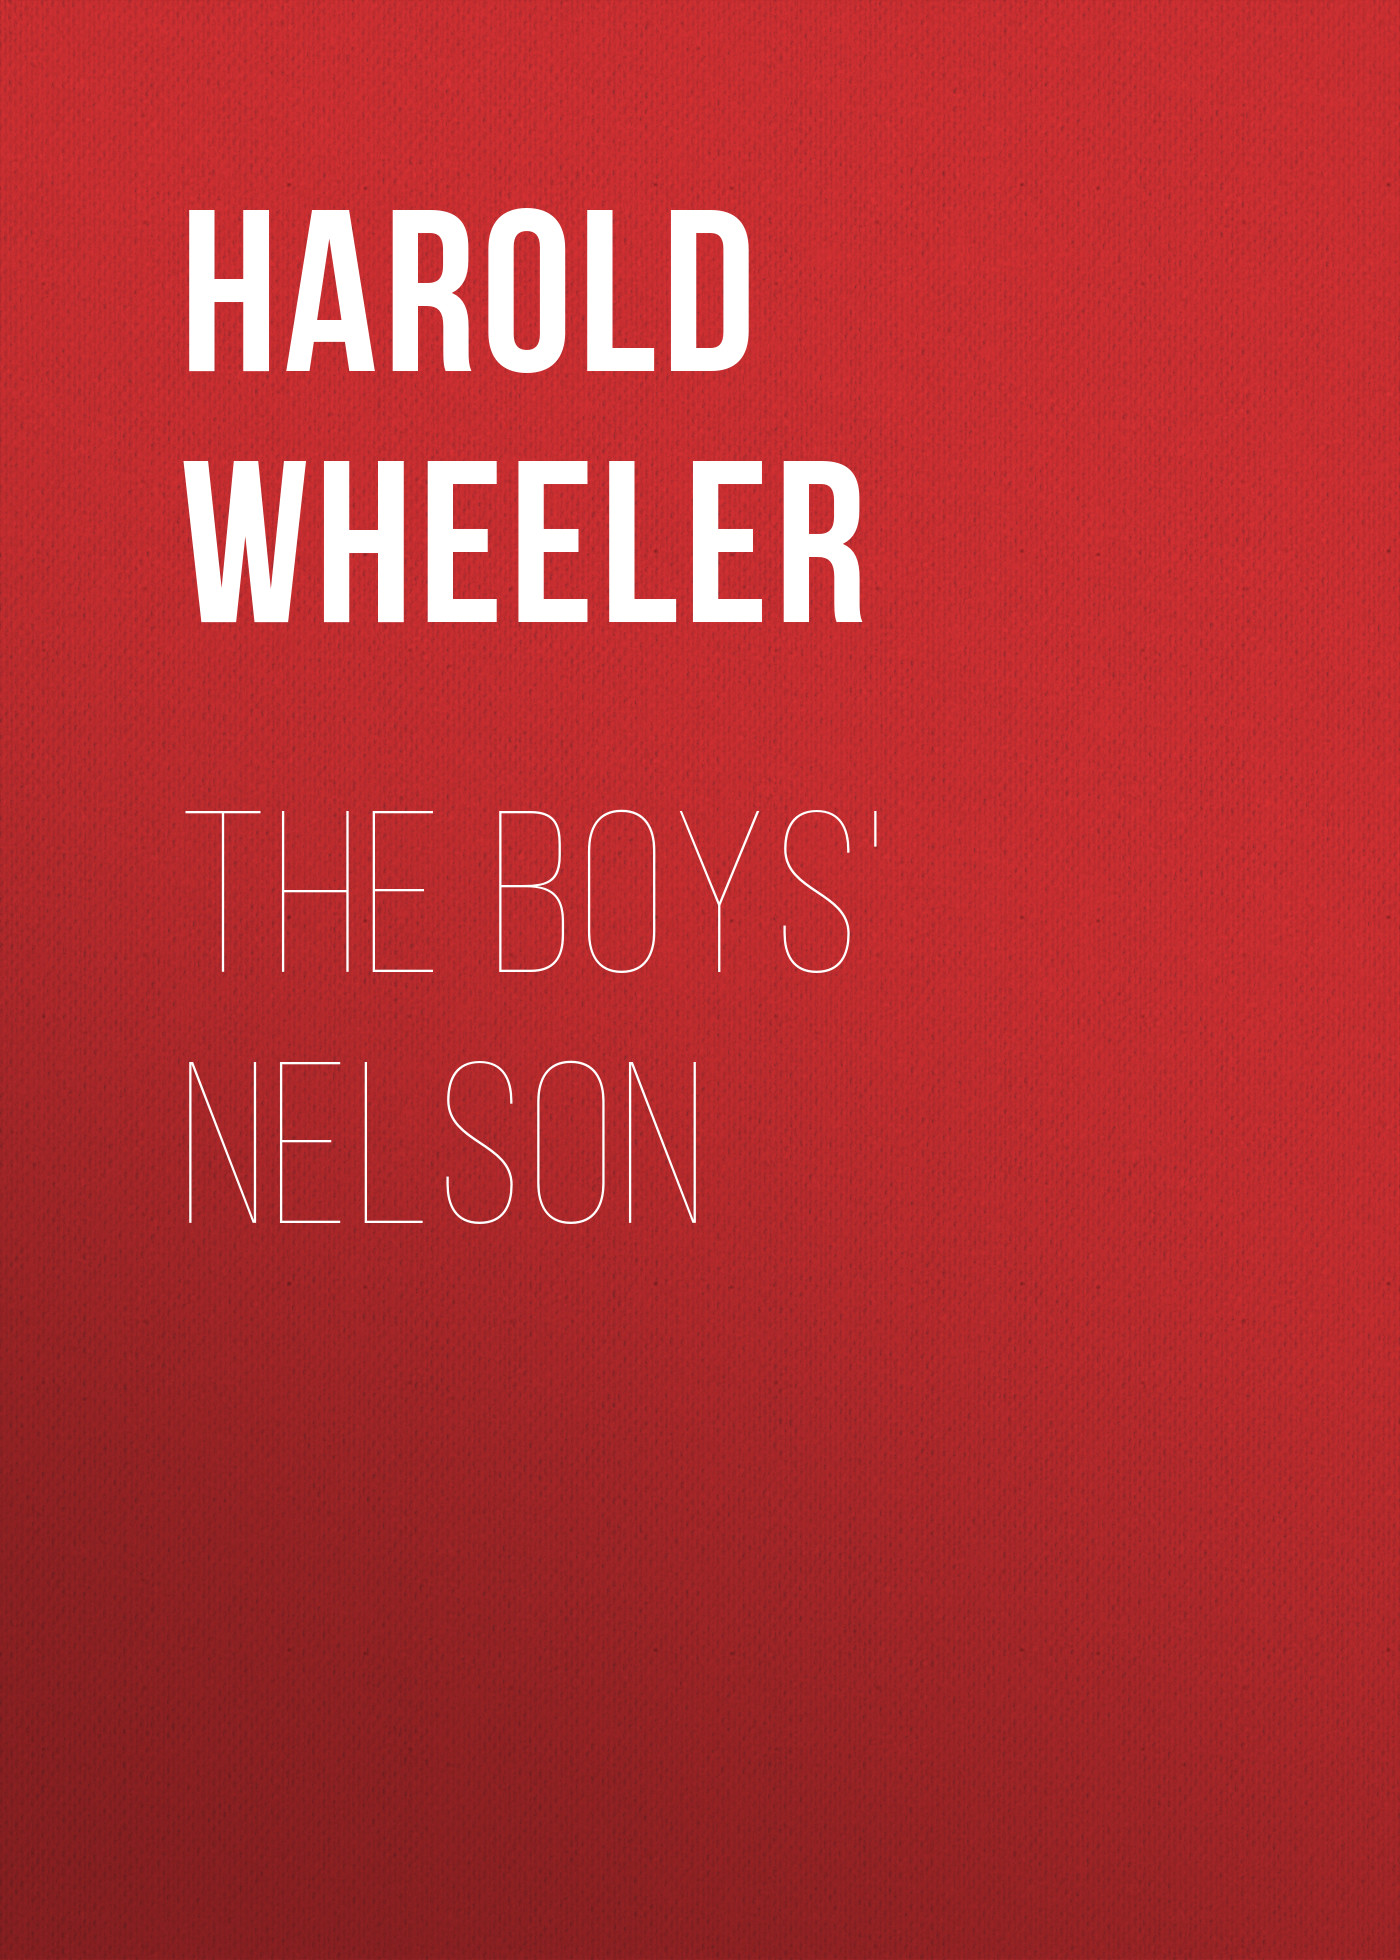 Harold Wheeler The Boys' Nelson